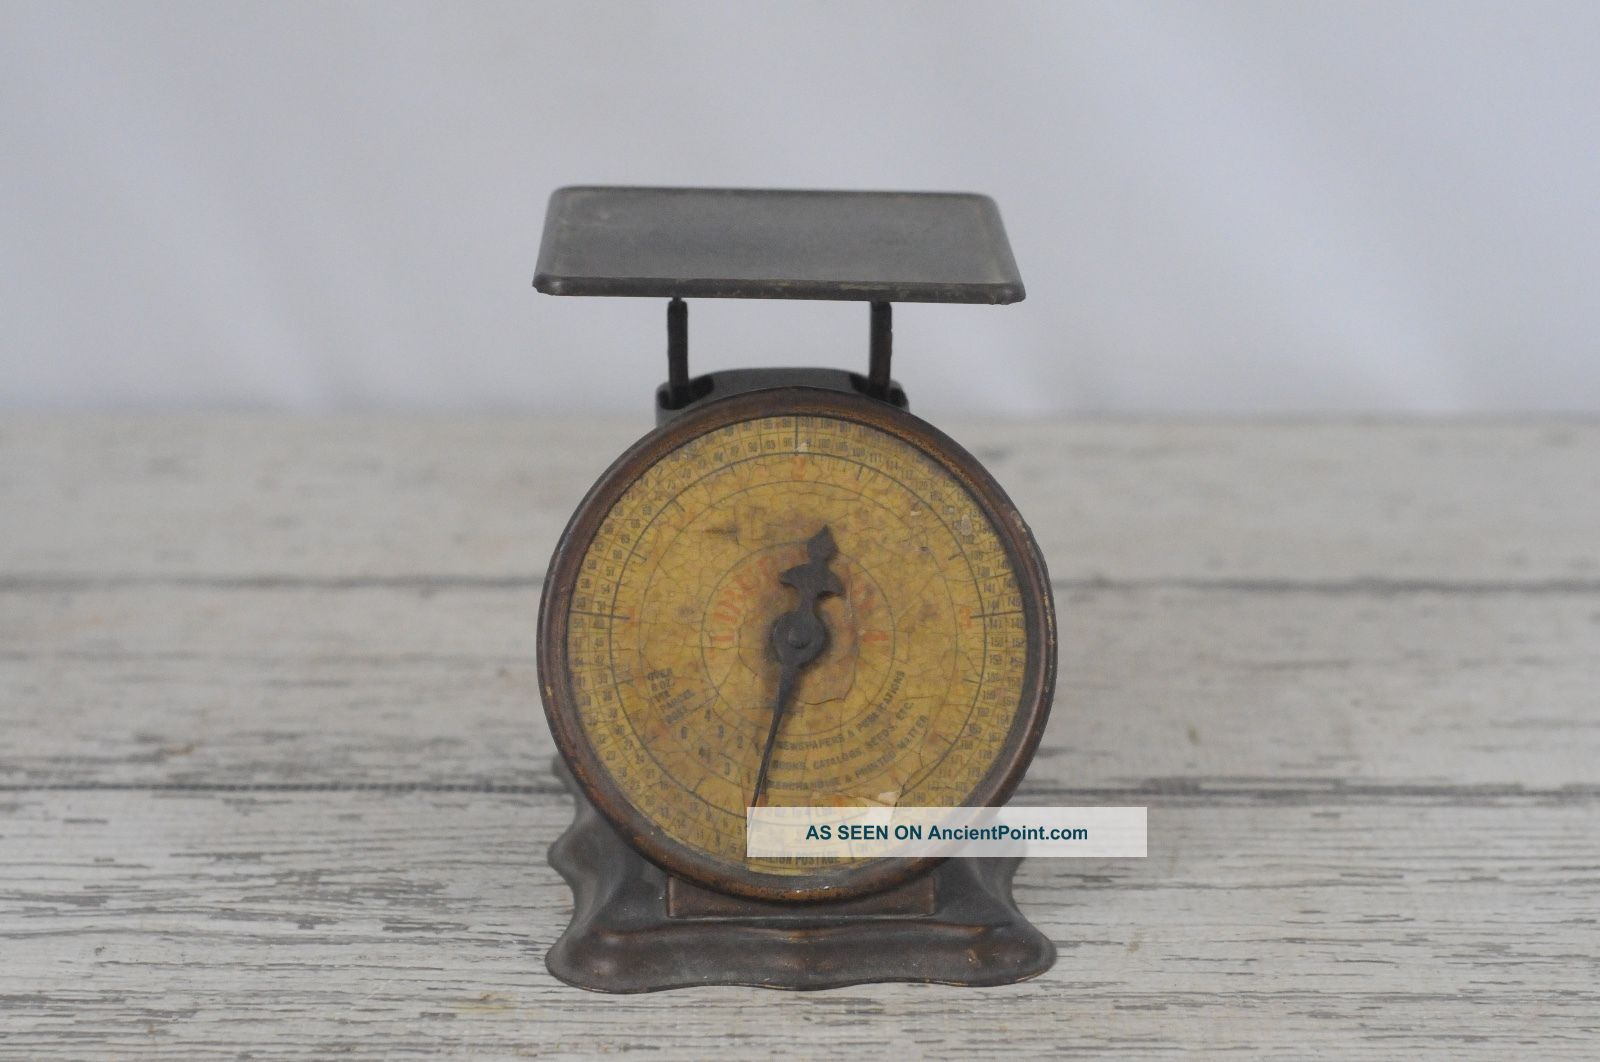 Vintage Triner Postal Scale Model Liberty 4 Postal Scale 1oz - 4lbs Early 1900s Scales photo